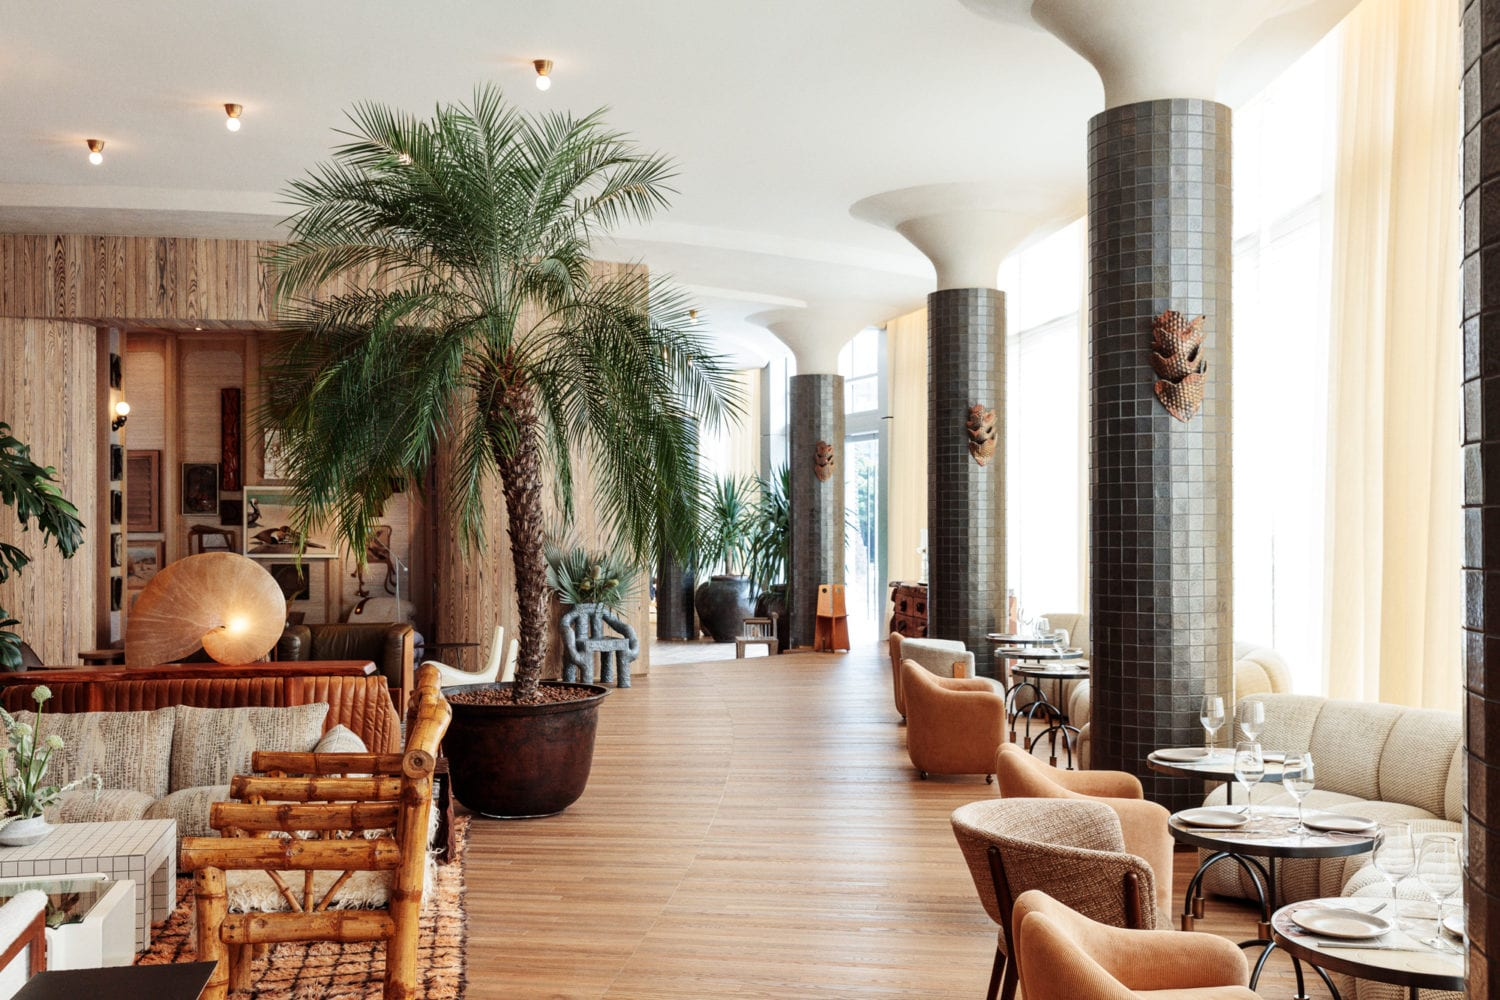 Santa-Monica-Proper-Luxury-Boutique-Hotel-by-Kelly-Wearstler-Yellowtrace-10a